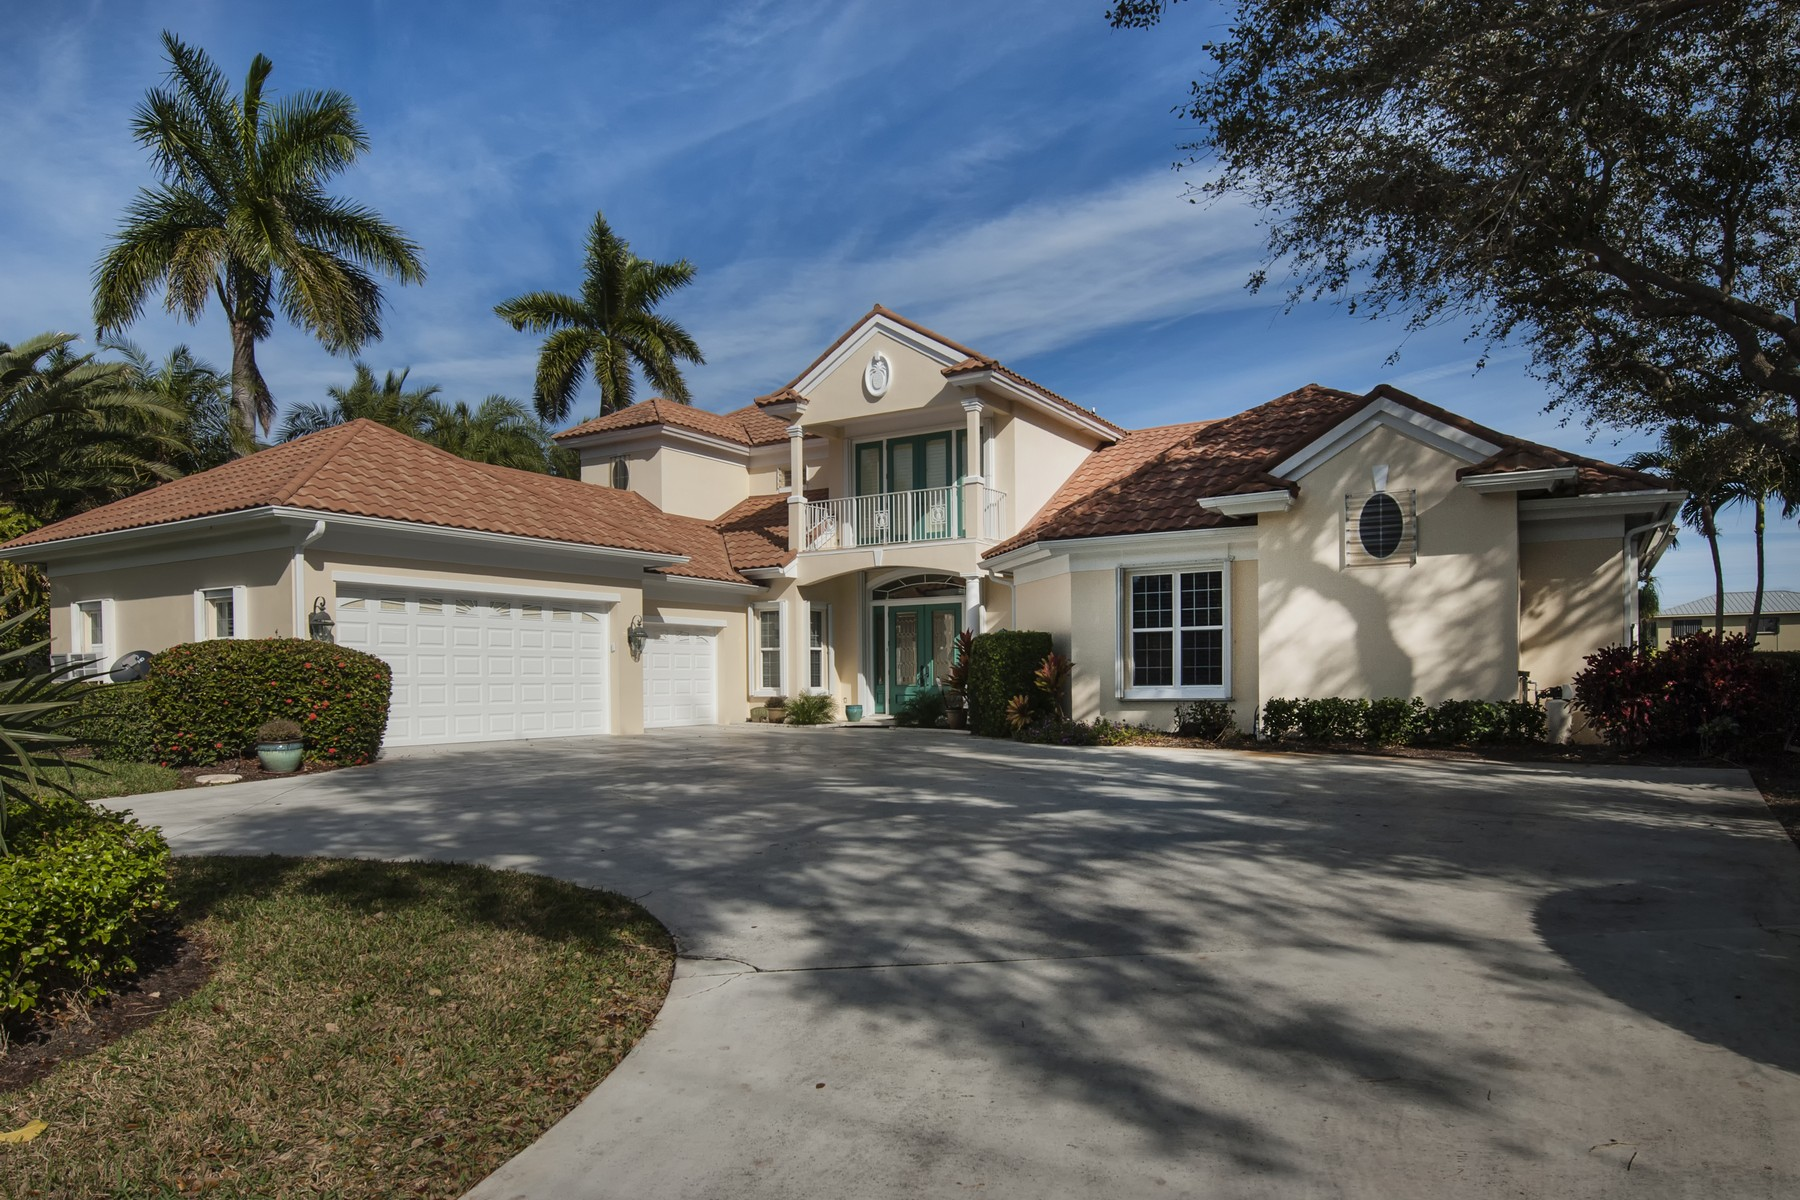 Single Family Home for Sale at Boater's Delight! Two Story Estate Home on Bethel Creek 4770 Bethel Creek Drive Vero Beach, Florida 32963 United States